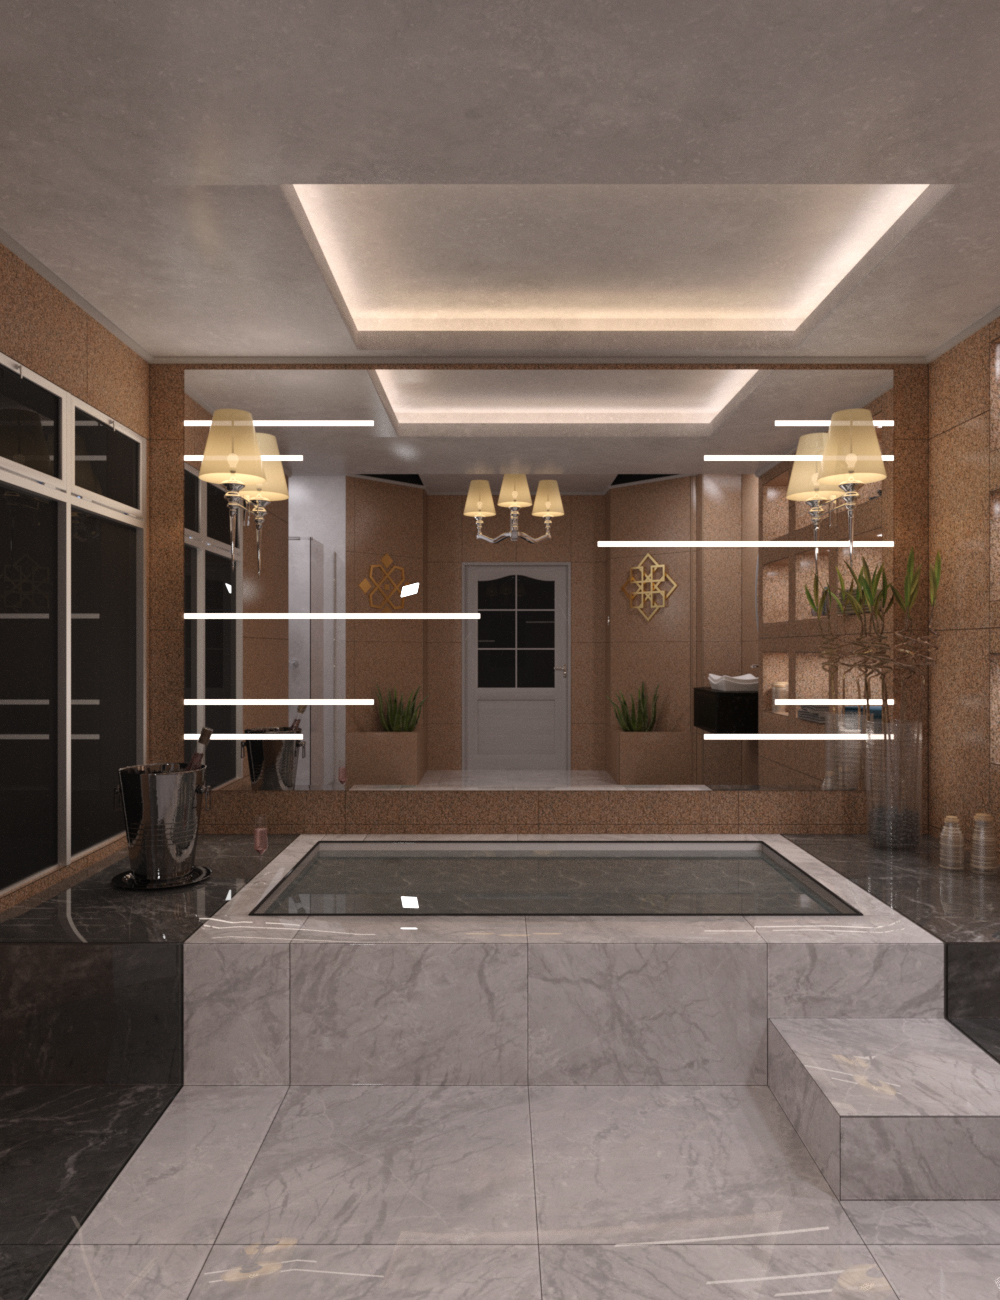 Deluxe Jacuzzi Room by: fjaa3d, 3D Models by Daz 3D